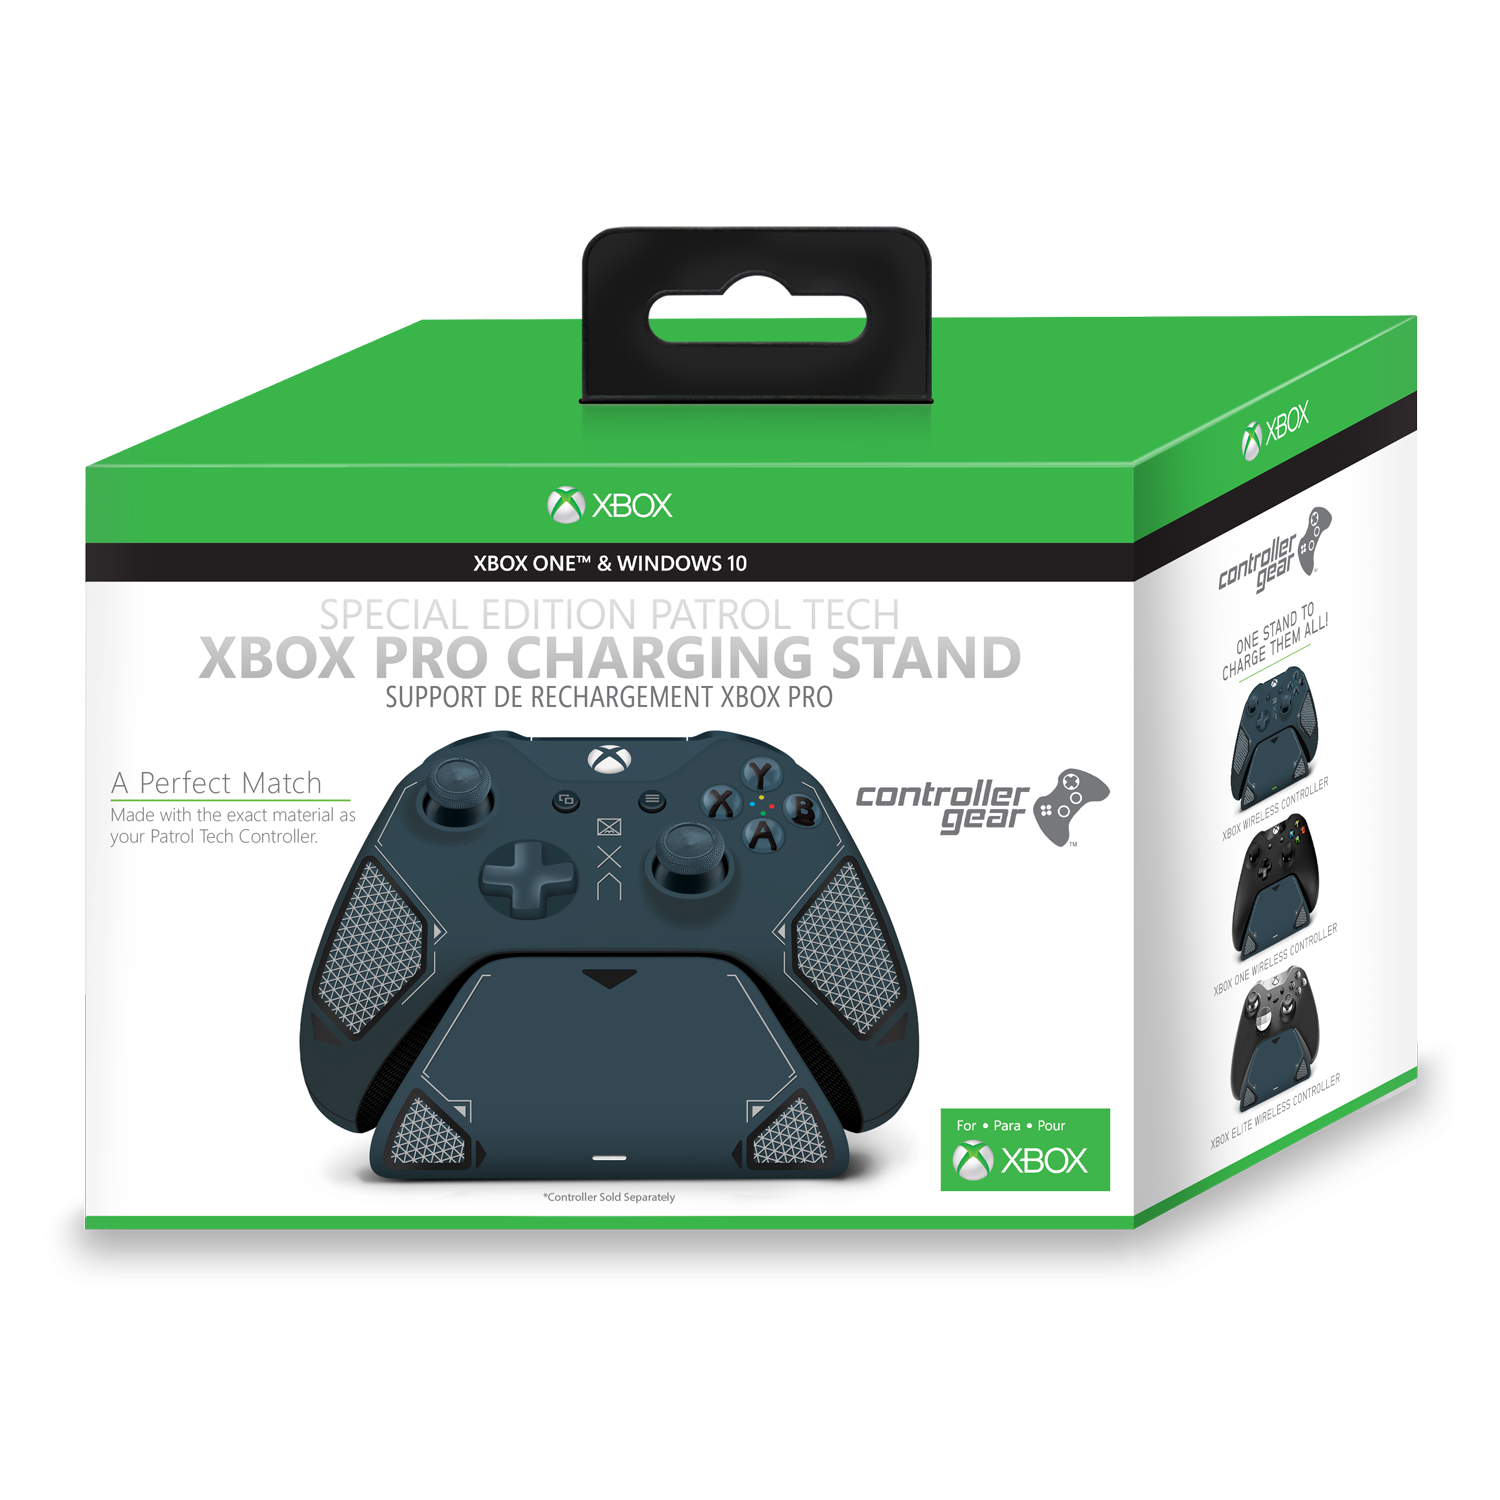 Patrol Tech Xbox Pro Charging Stand. Exact match to your Xbox One Patrol Tech Controller. Officially Licensed and Designed for Xbox